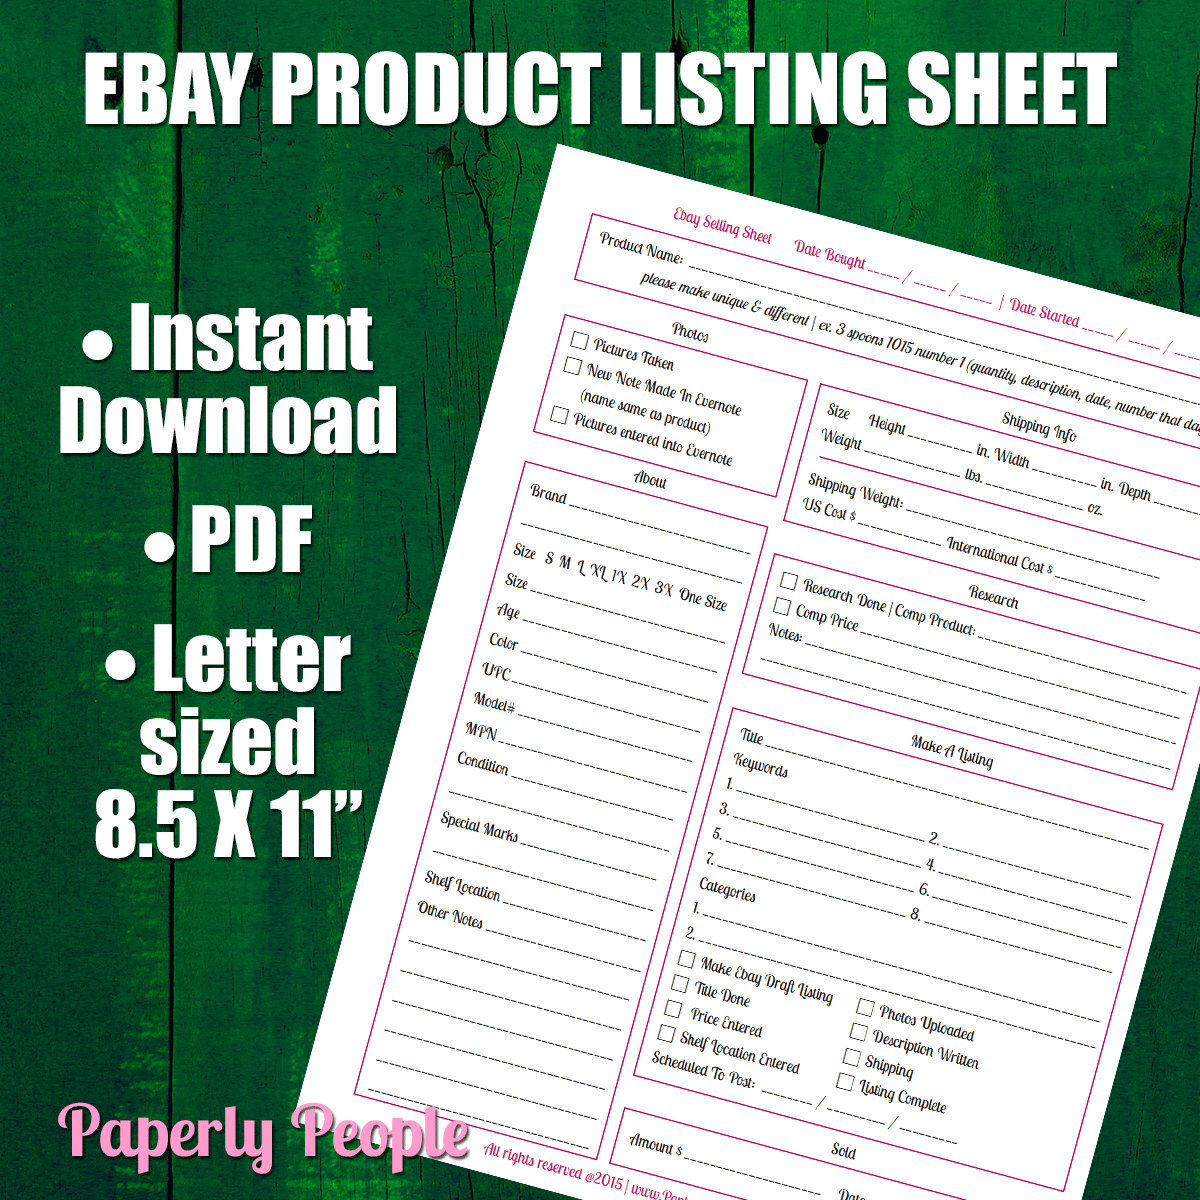 Ebay Products Listing Sheet